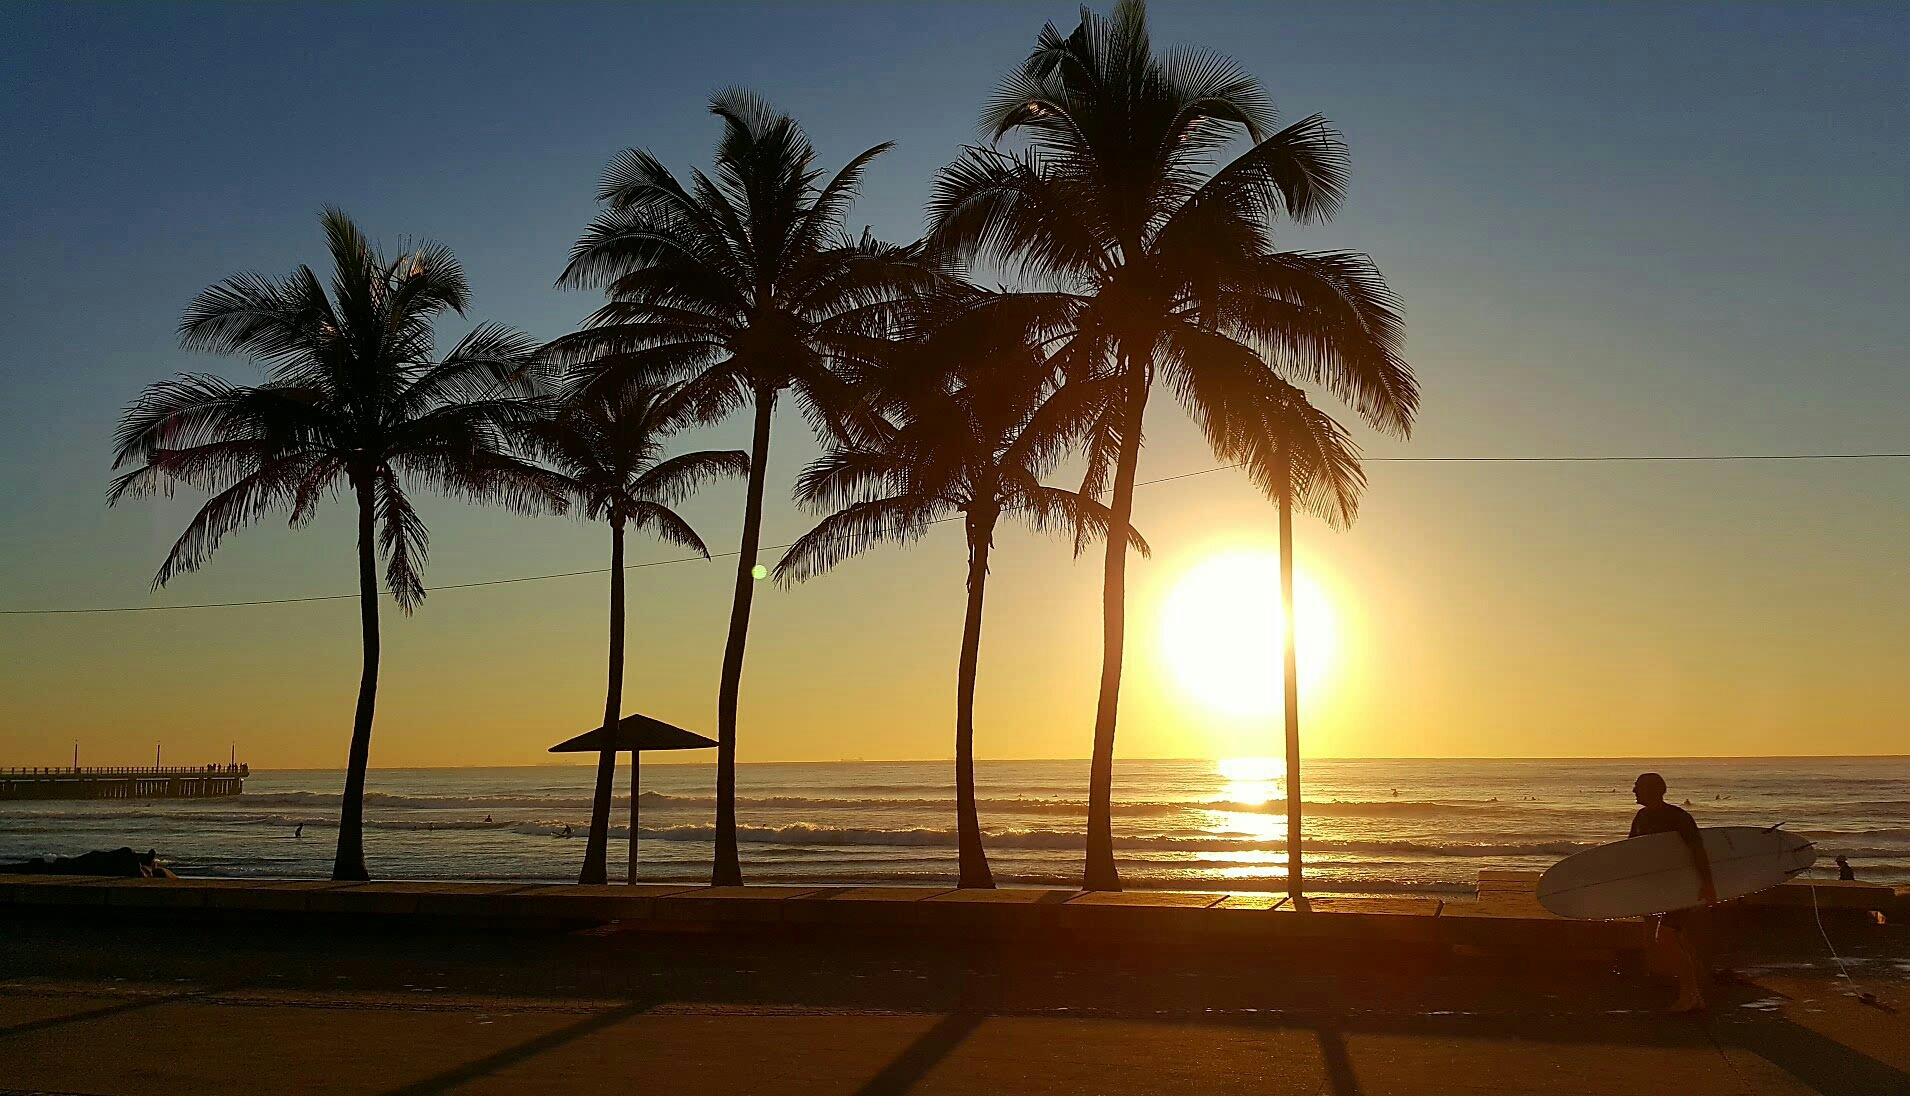 Sunrise & Palm Trees by Kasthurie Govender